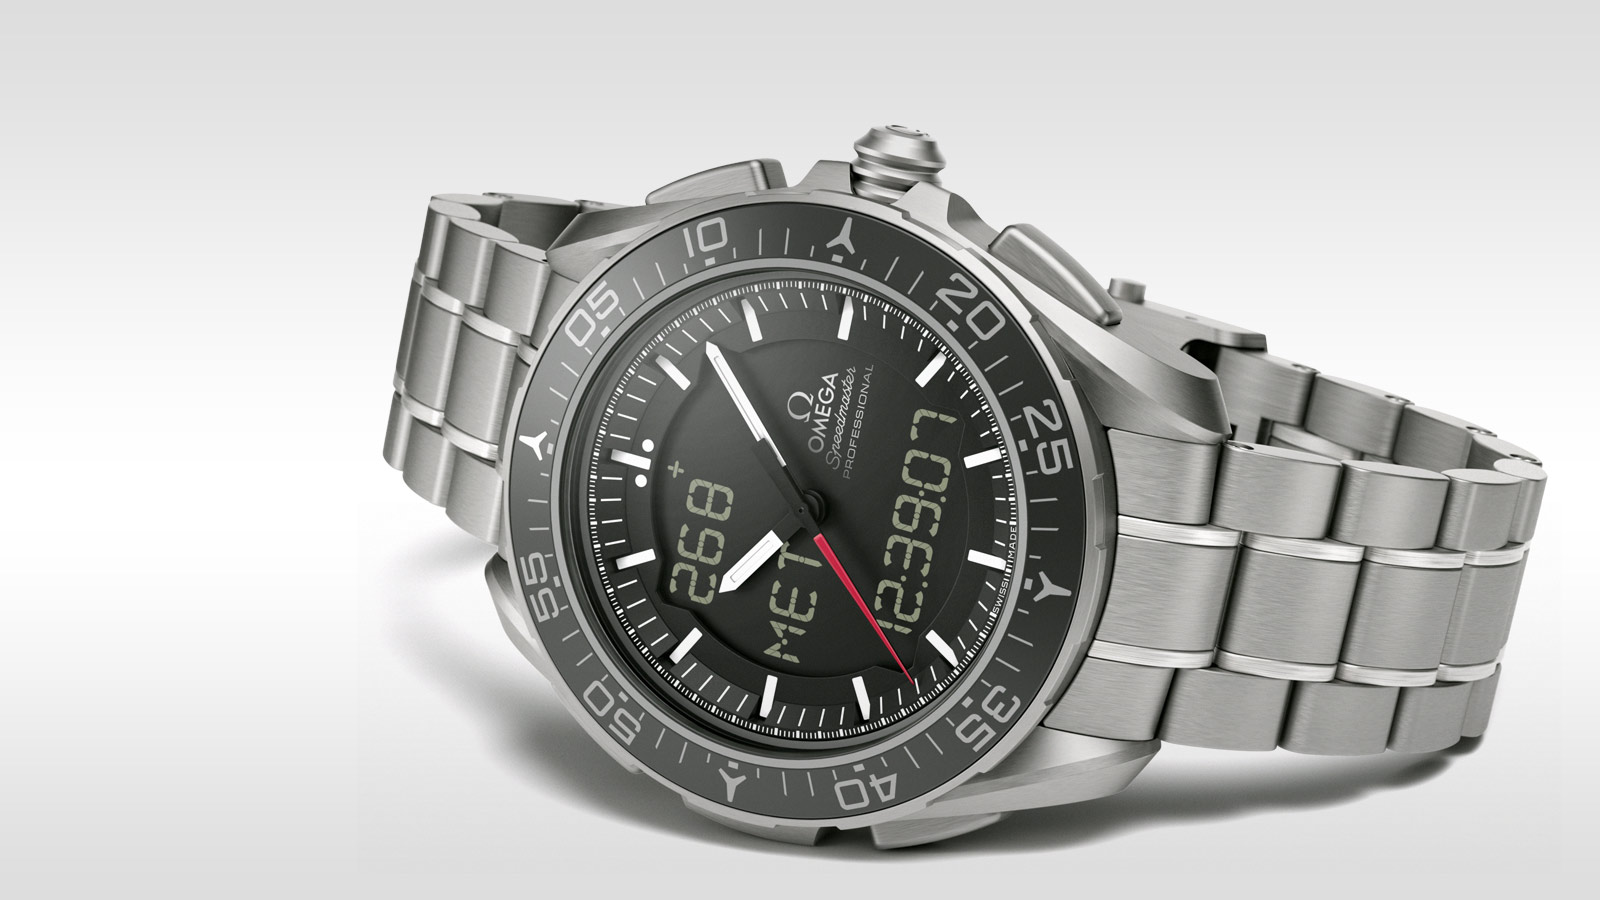 Speedmaster SKYWALKER X‑33 Skywalker X‑33 Chronograph 45 mm - 318.90.45.79.01.001 - Просмотреть 2